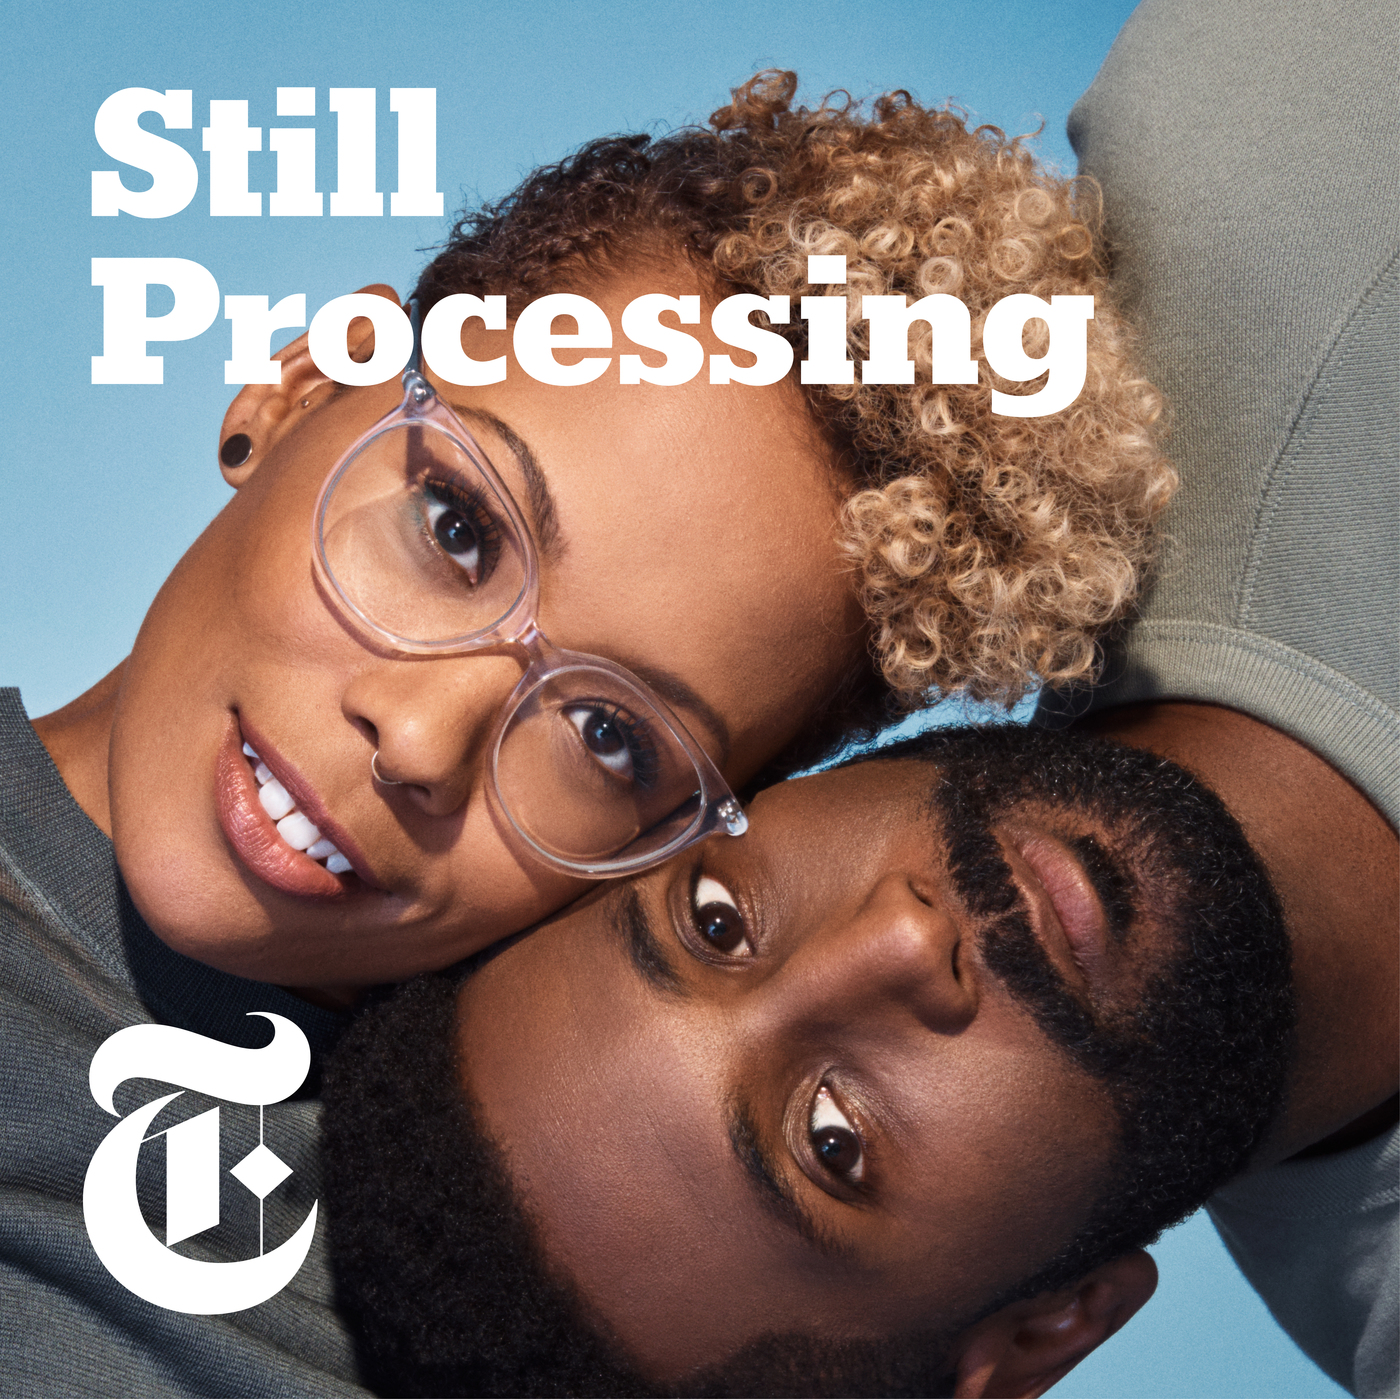 STILL PROCESSING - This New York Times weekly podcast tackles the latest cultural happenings shaping our society. Part pop-culture commentary, part education, and part audio op-ed to get you thinking on different perspectives of the conversation. Listen to it on Apple Podcasts or on the Still Processing website.